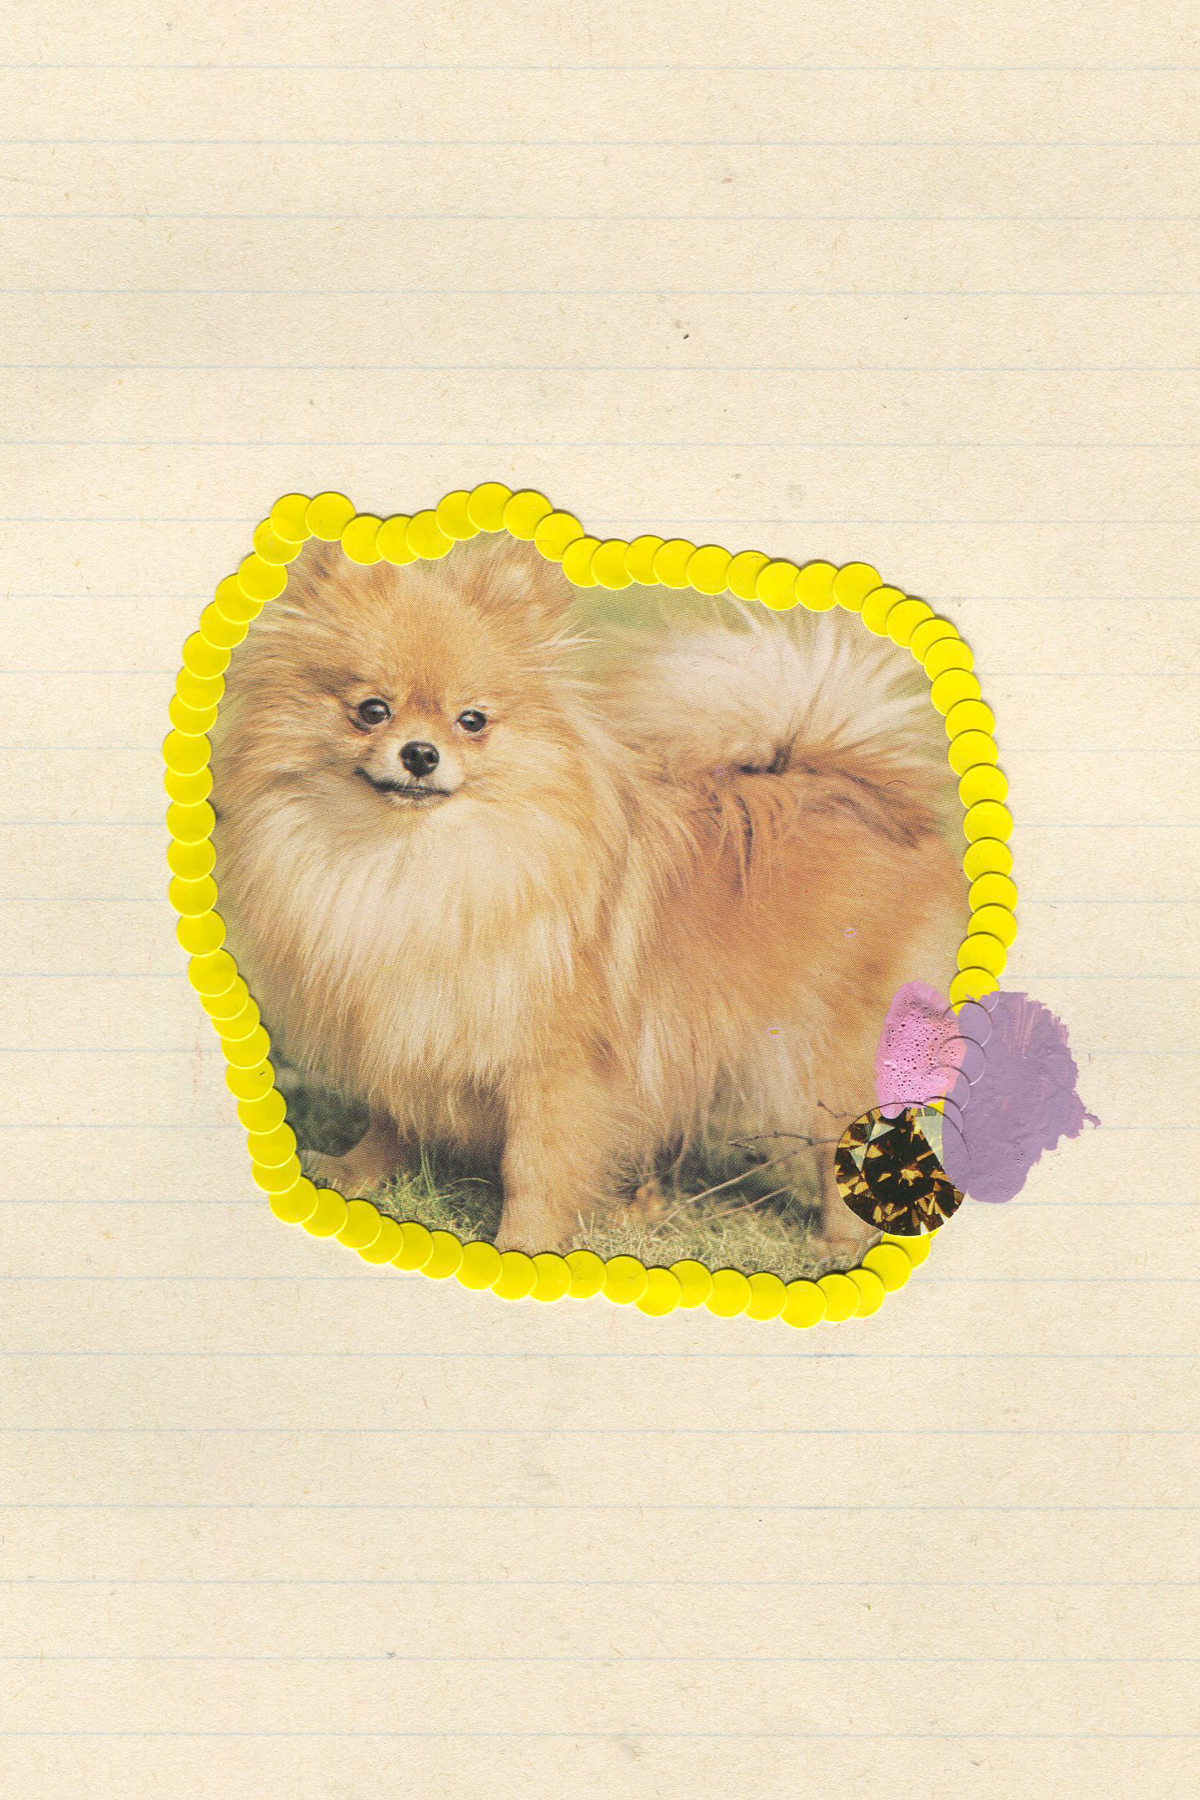 First Place Fluffy Puppy #4, 2017, collage, found paper, stickers, acrylic paint